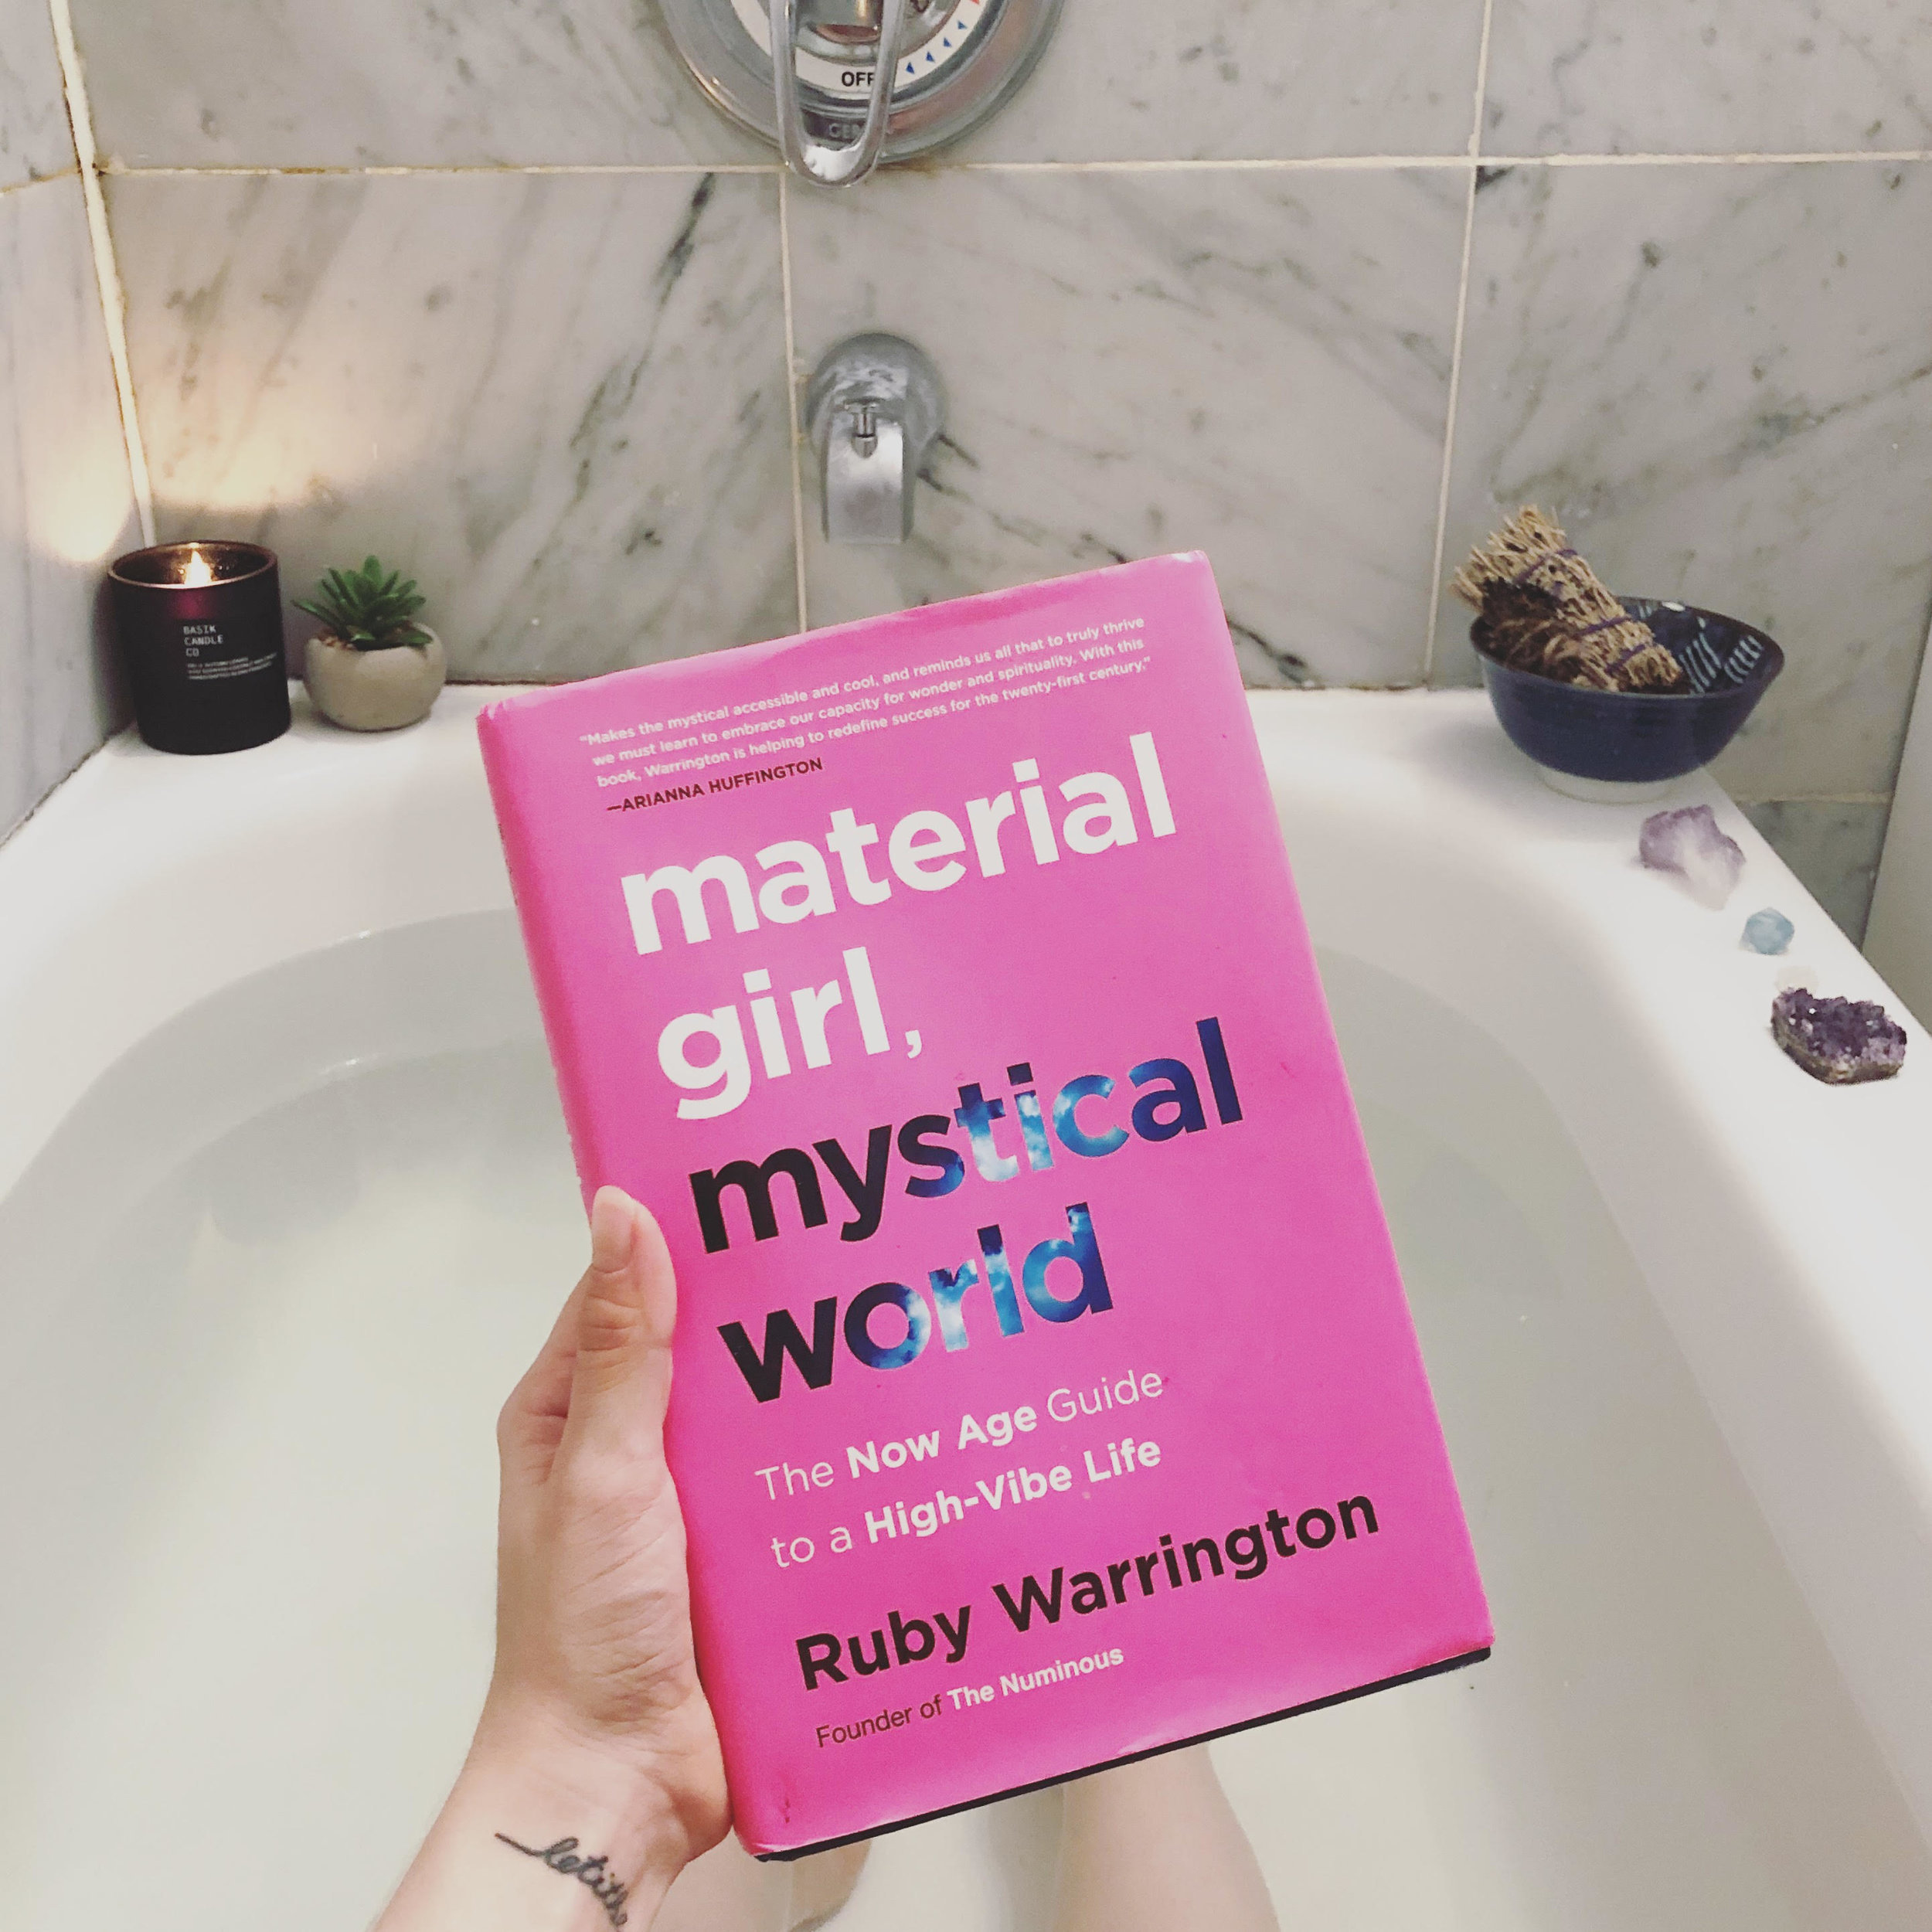 I always like to have a good book to read while I take a bath.  Material Girl, Mystical World  is a must read!